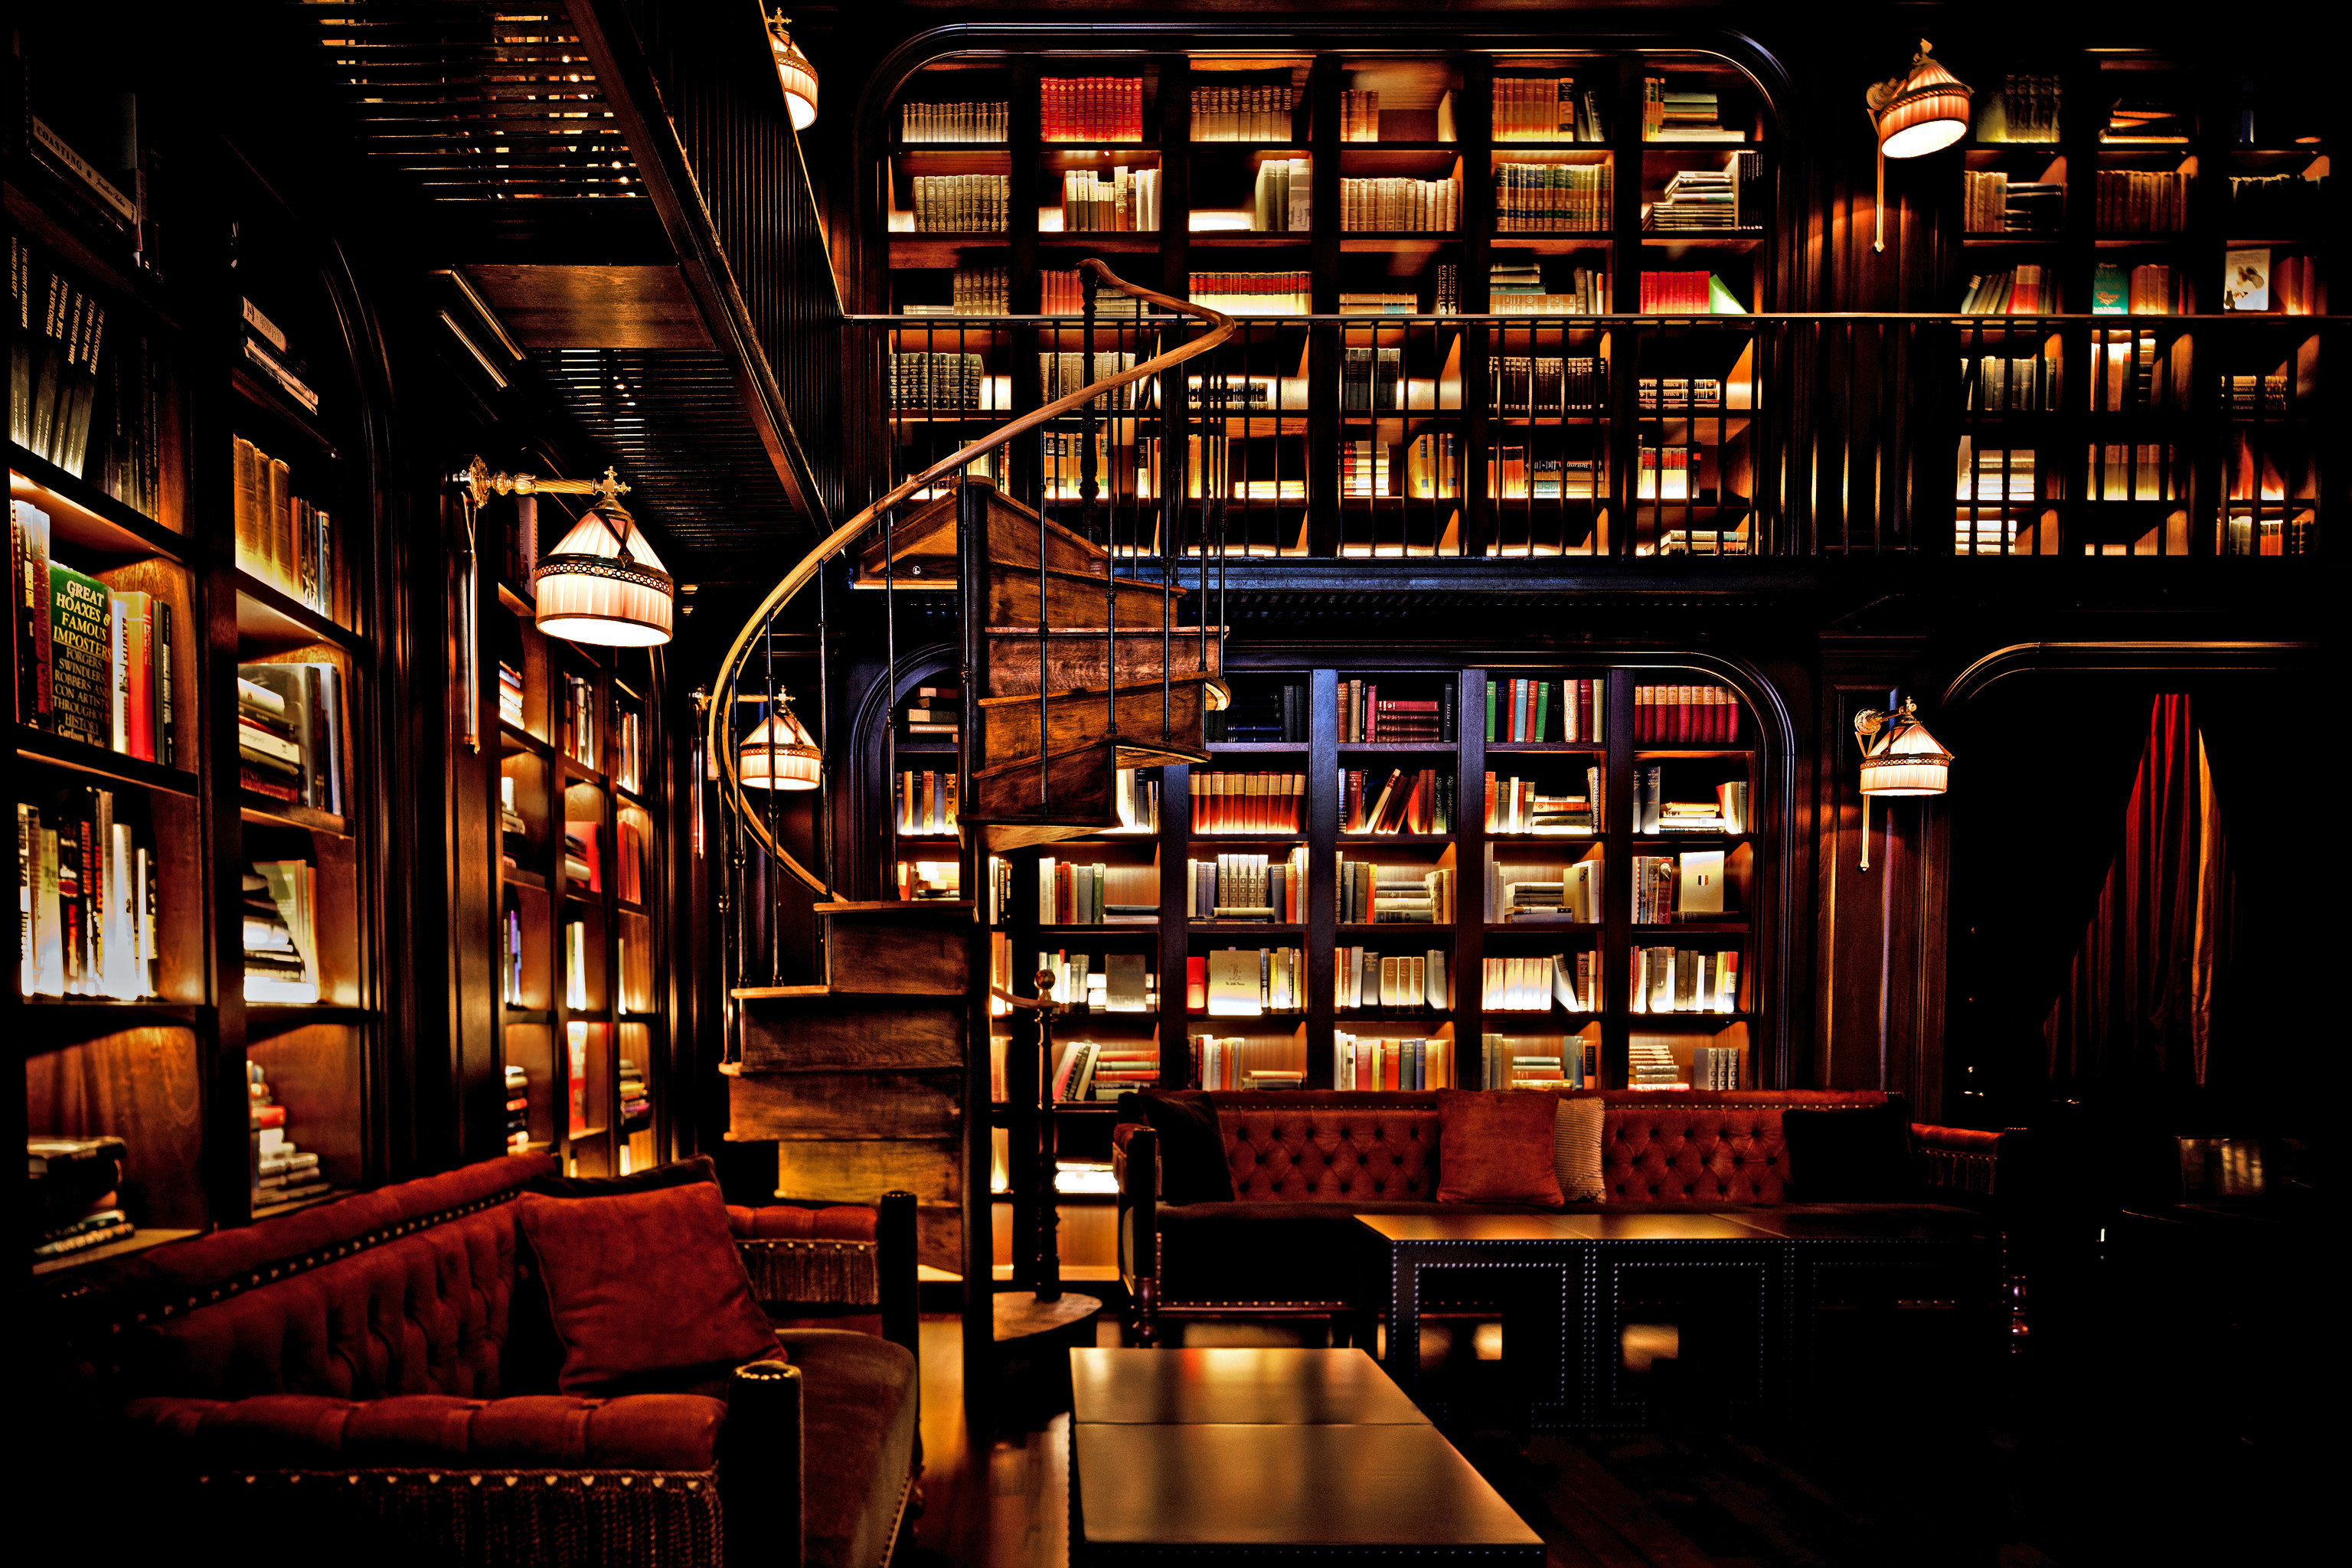 City Hip Hotels Luxury Luxury Travel NYC Romantic Hotels building Bar